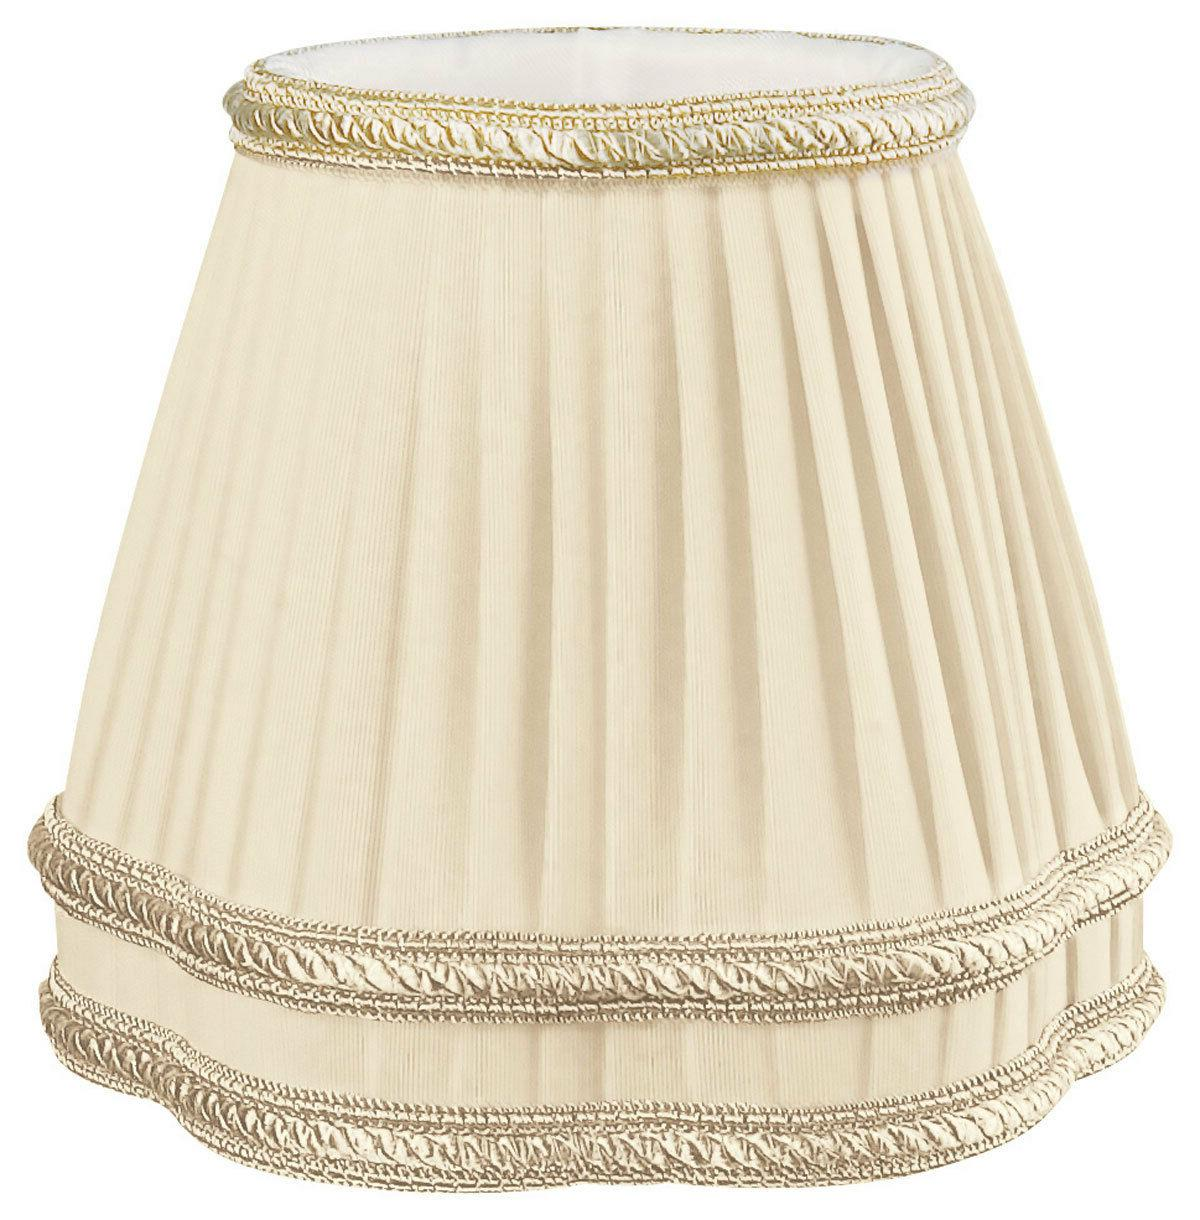 Beige with Bottom Trim Lamp